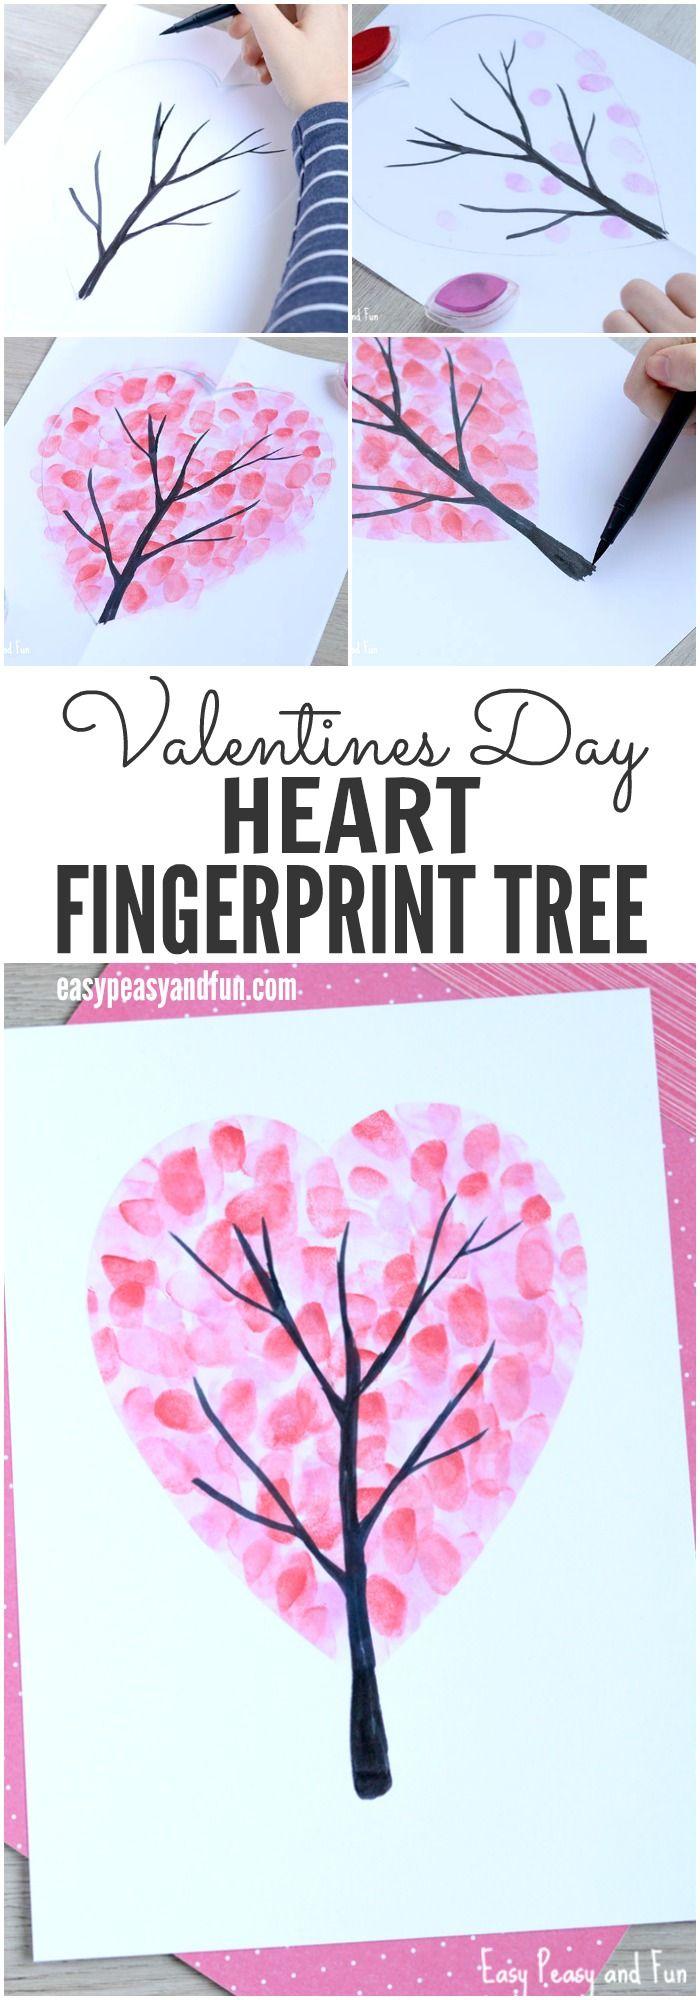 Valentines Day Heart Fingerprint Tree Craft for Kids | Make this valentine handprint craft as a keepsake for family members or to frame at home. Kids will love making a valentine handprint heart tree!